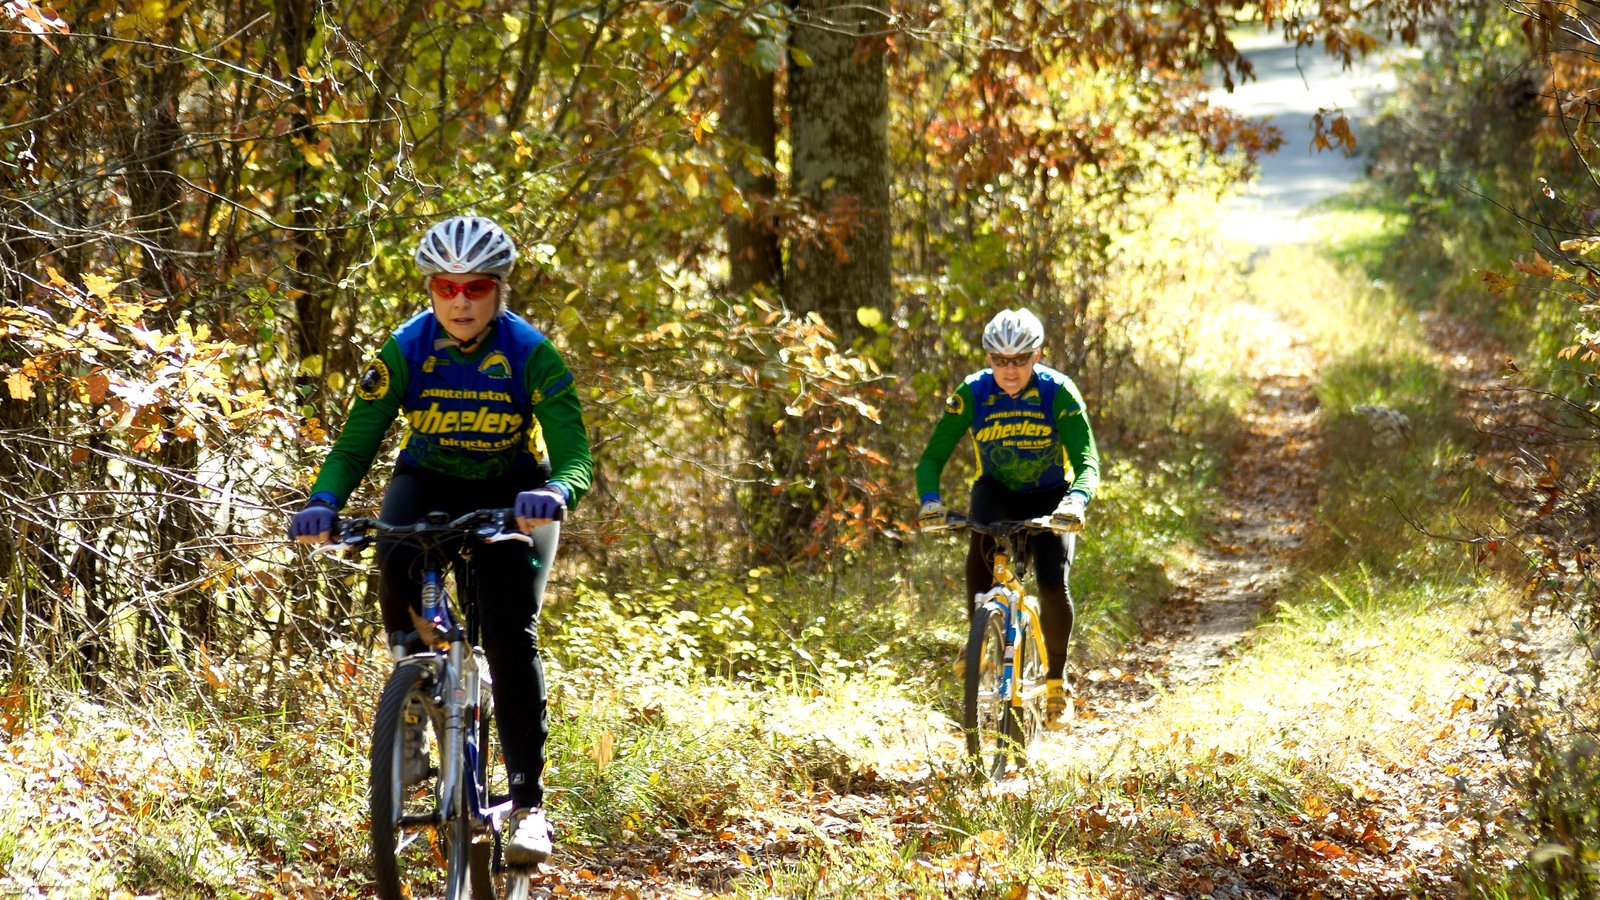 Charleston que inclui mountain bike, um evento desportivo e florestas